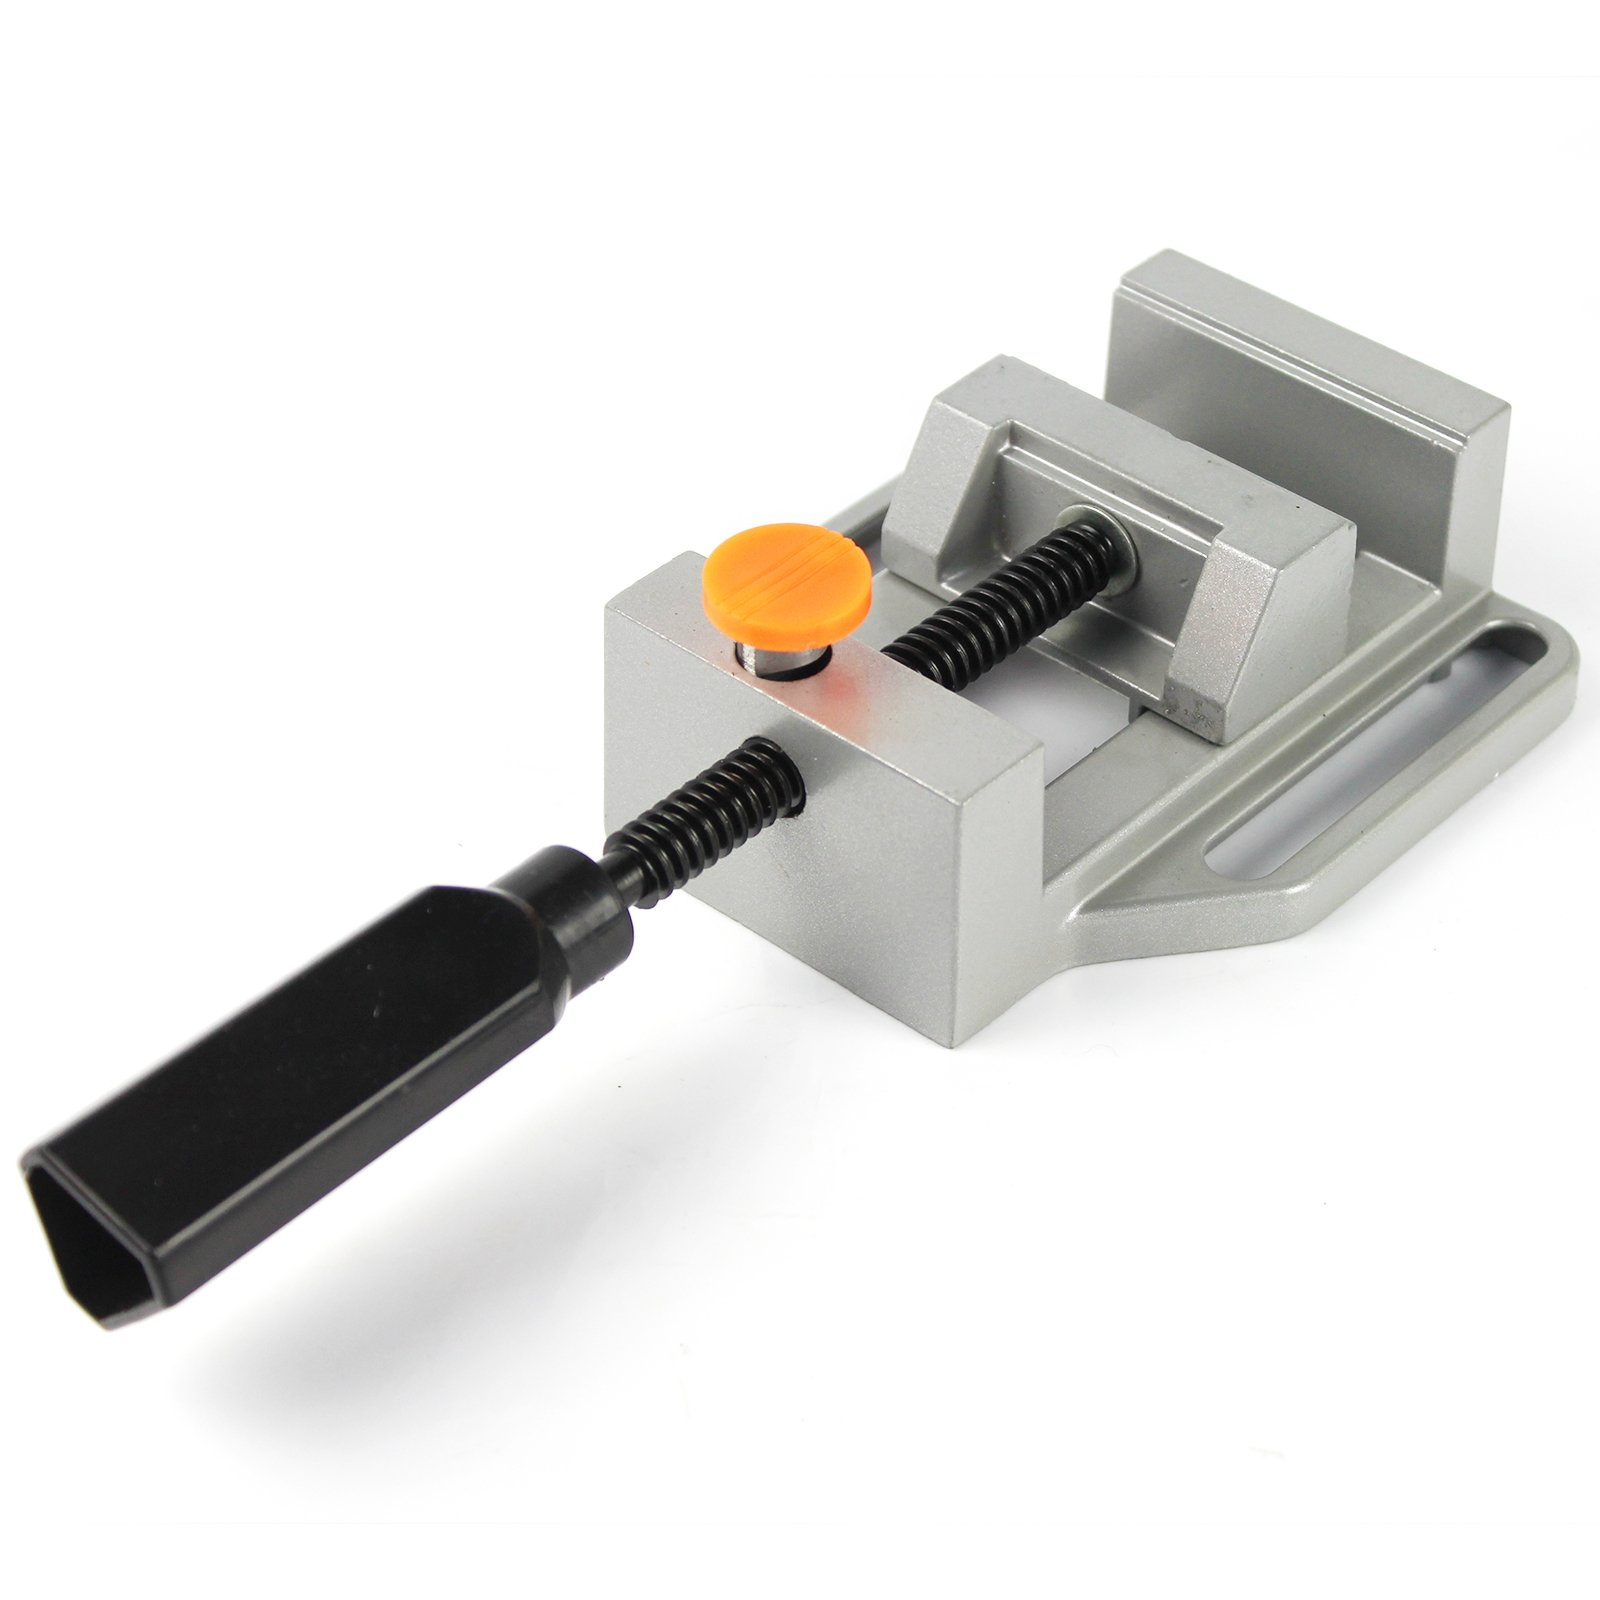 PANGOLIN Drill Press Vise, Quick Release Clamp Vice Light Duty Perfect for Woodworking,Crafts or Handyman,Small Projects and Keep with 3 Year Warranty